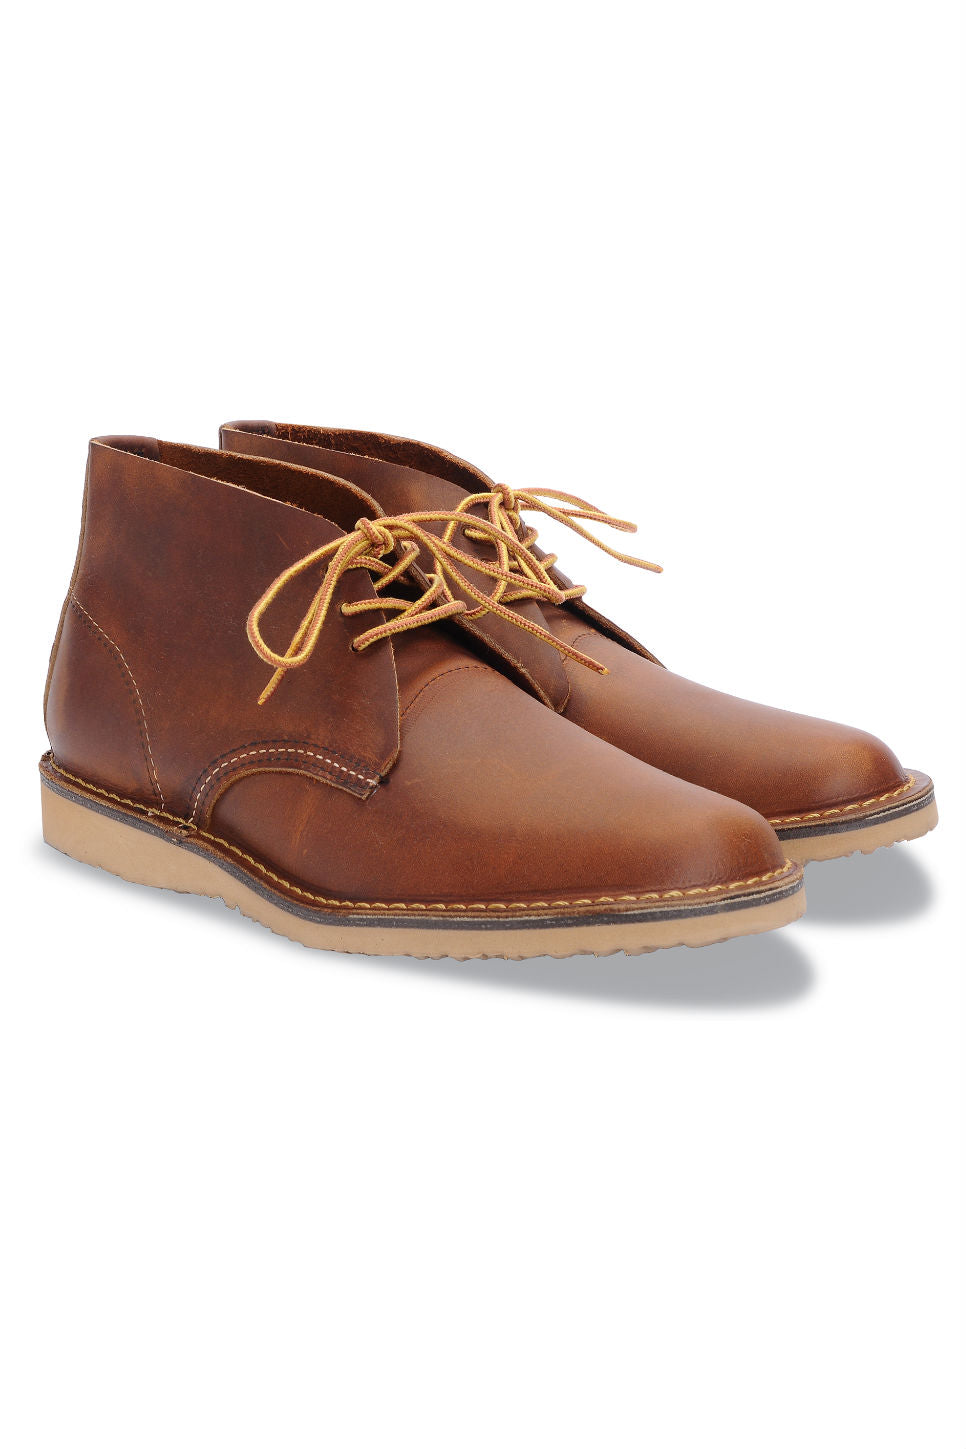 Red Wing Heritage - Weekender Chukka - Copper - Profile